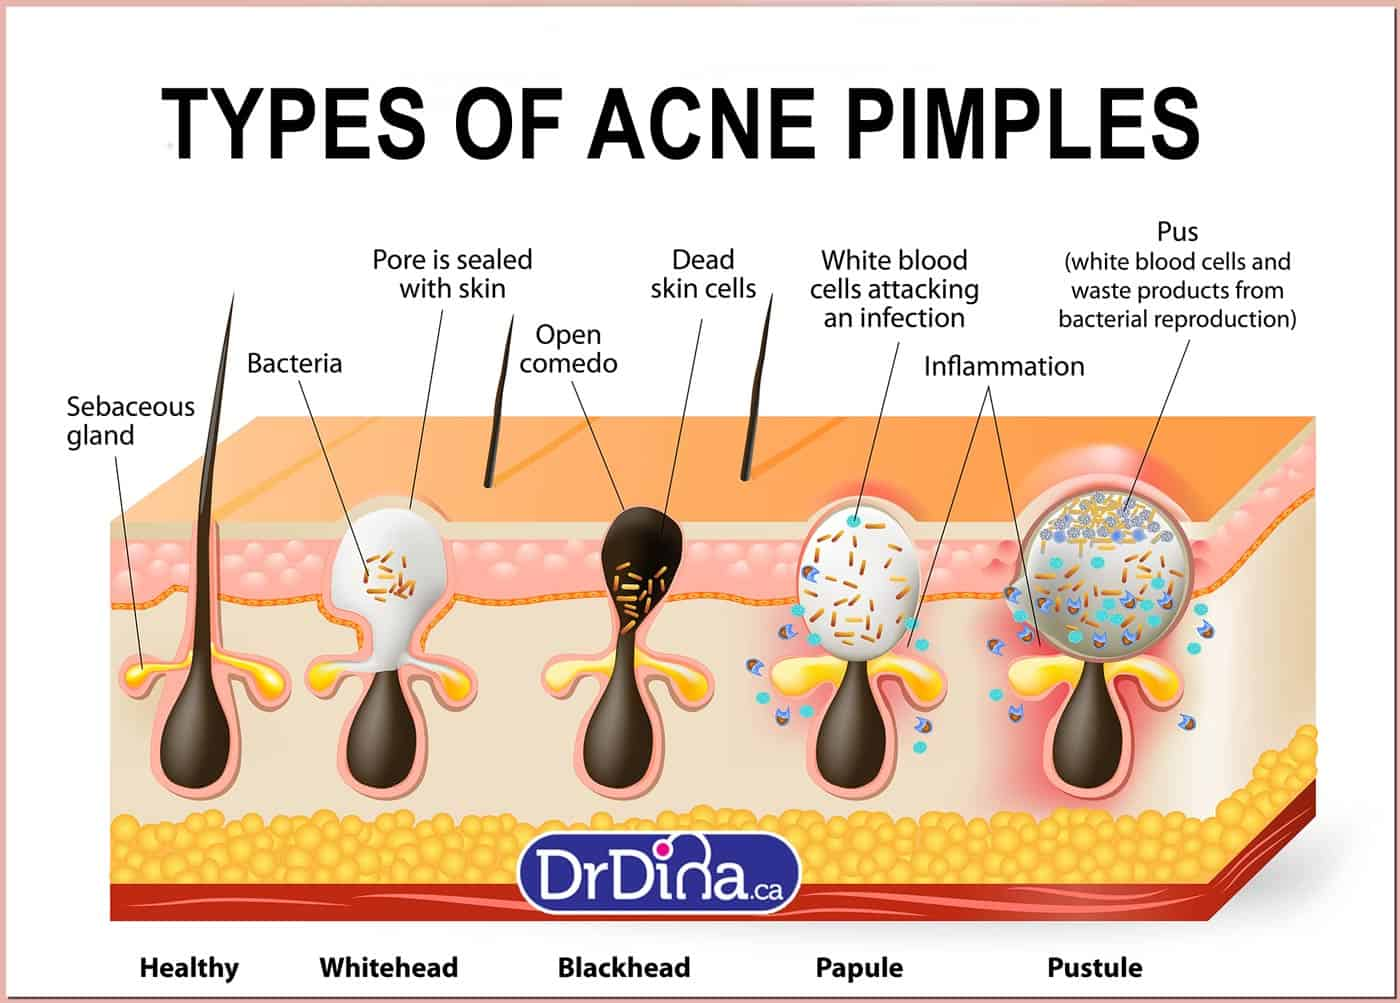 DrDina-Kids-Health-cystic-acne-1a